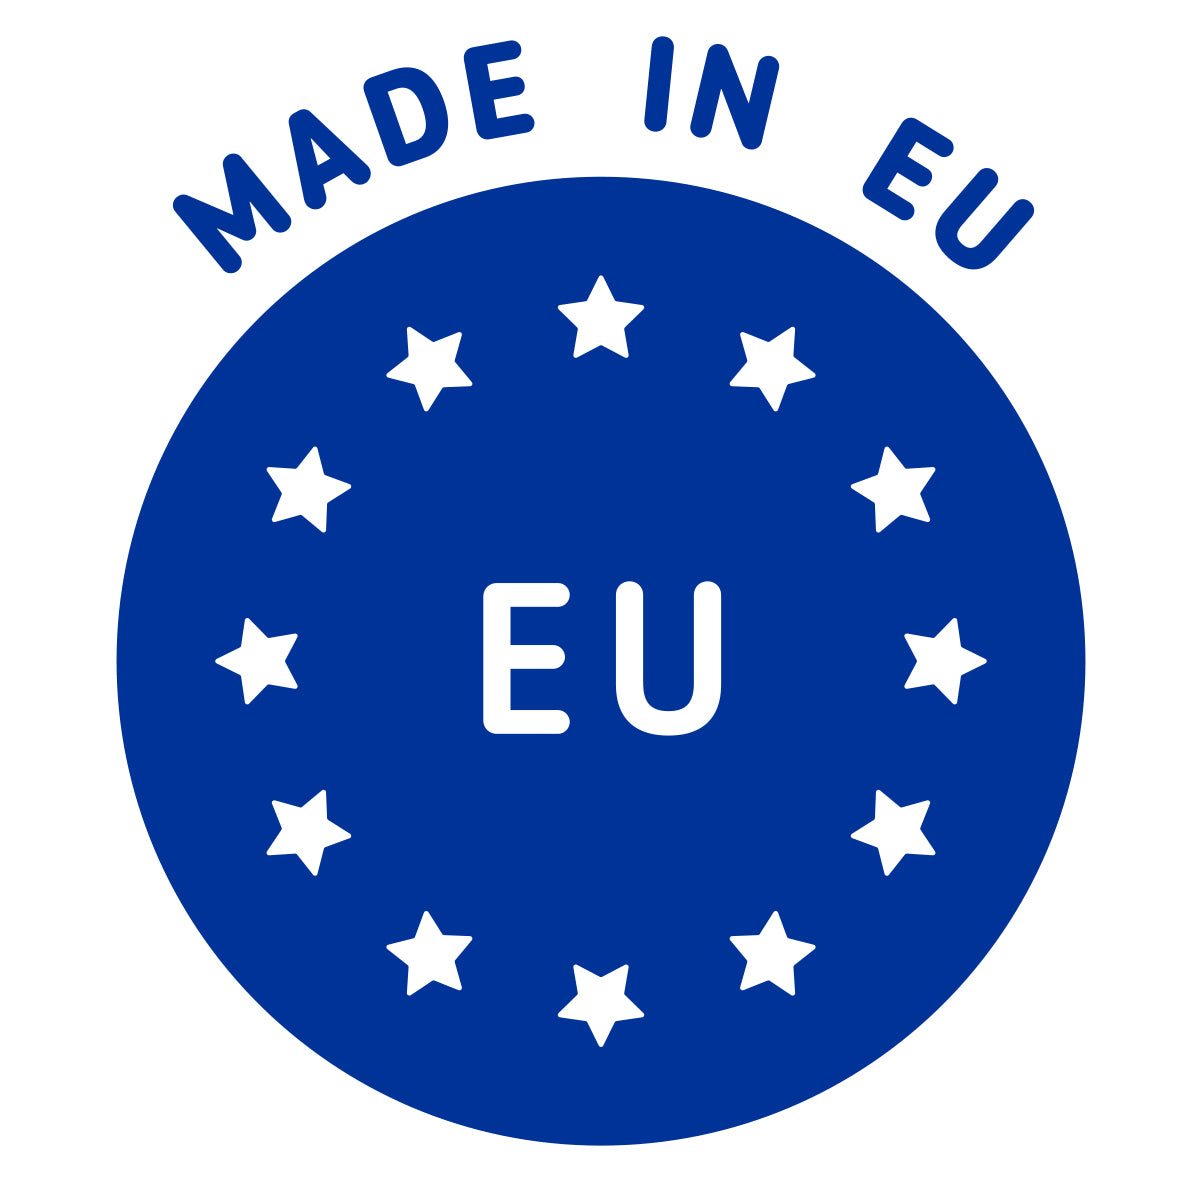 Doglyness Made in EU badge